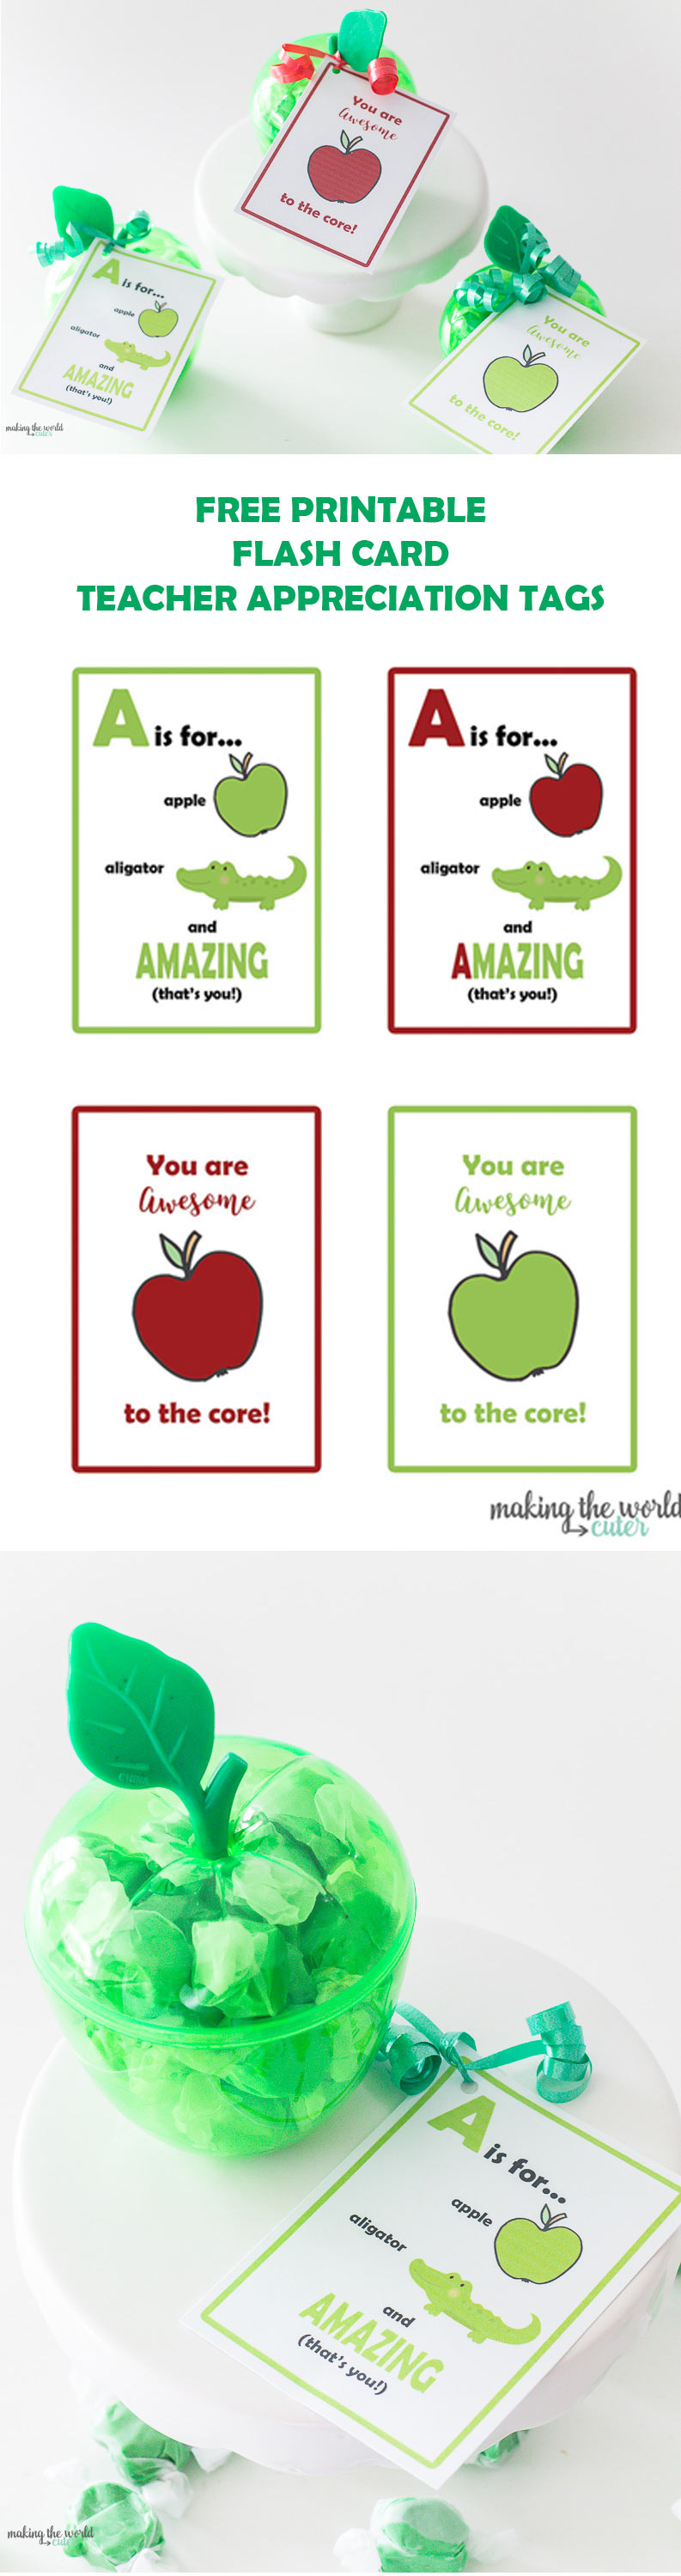 Apple Teacher Appreciation Printable tags and ideas on what to give with them. Flashcard style. so cute!